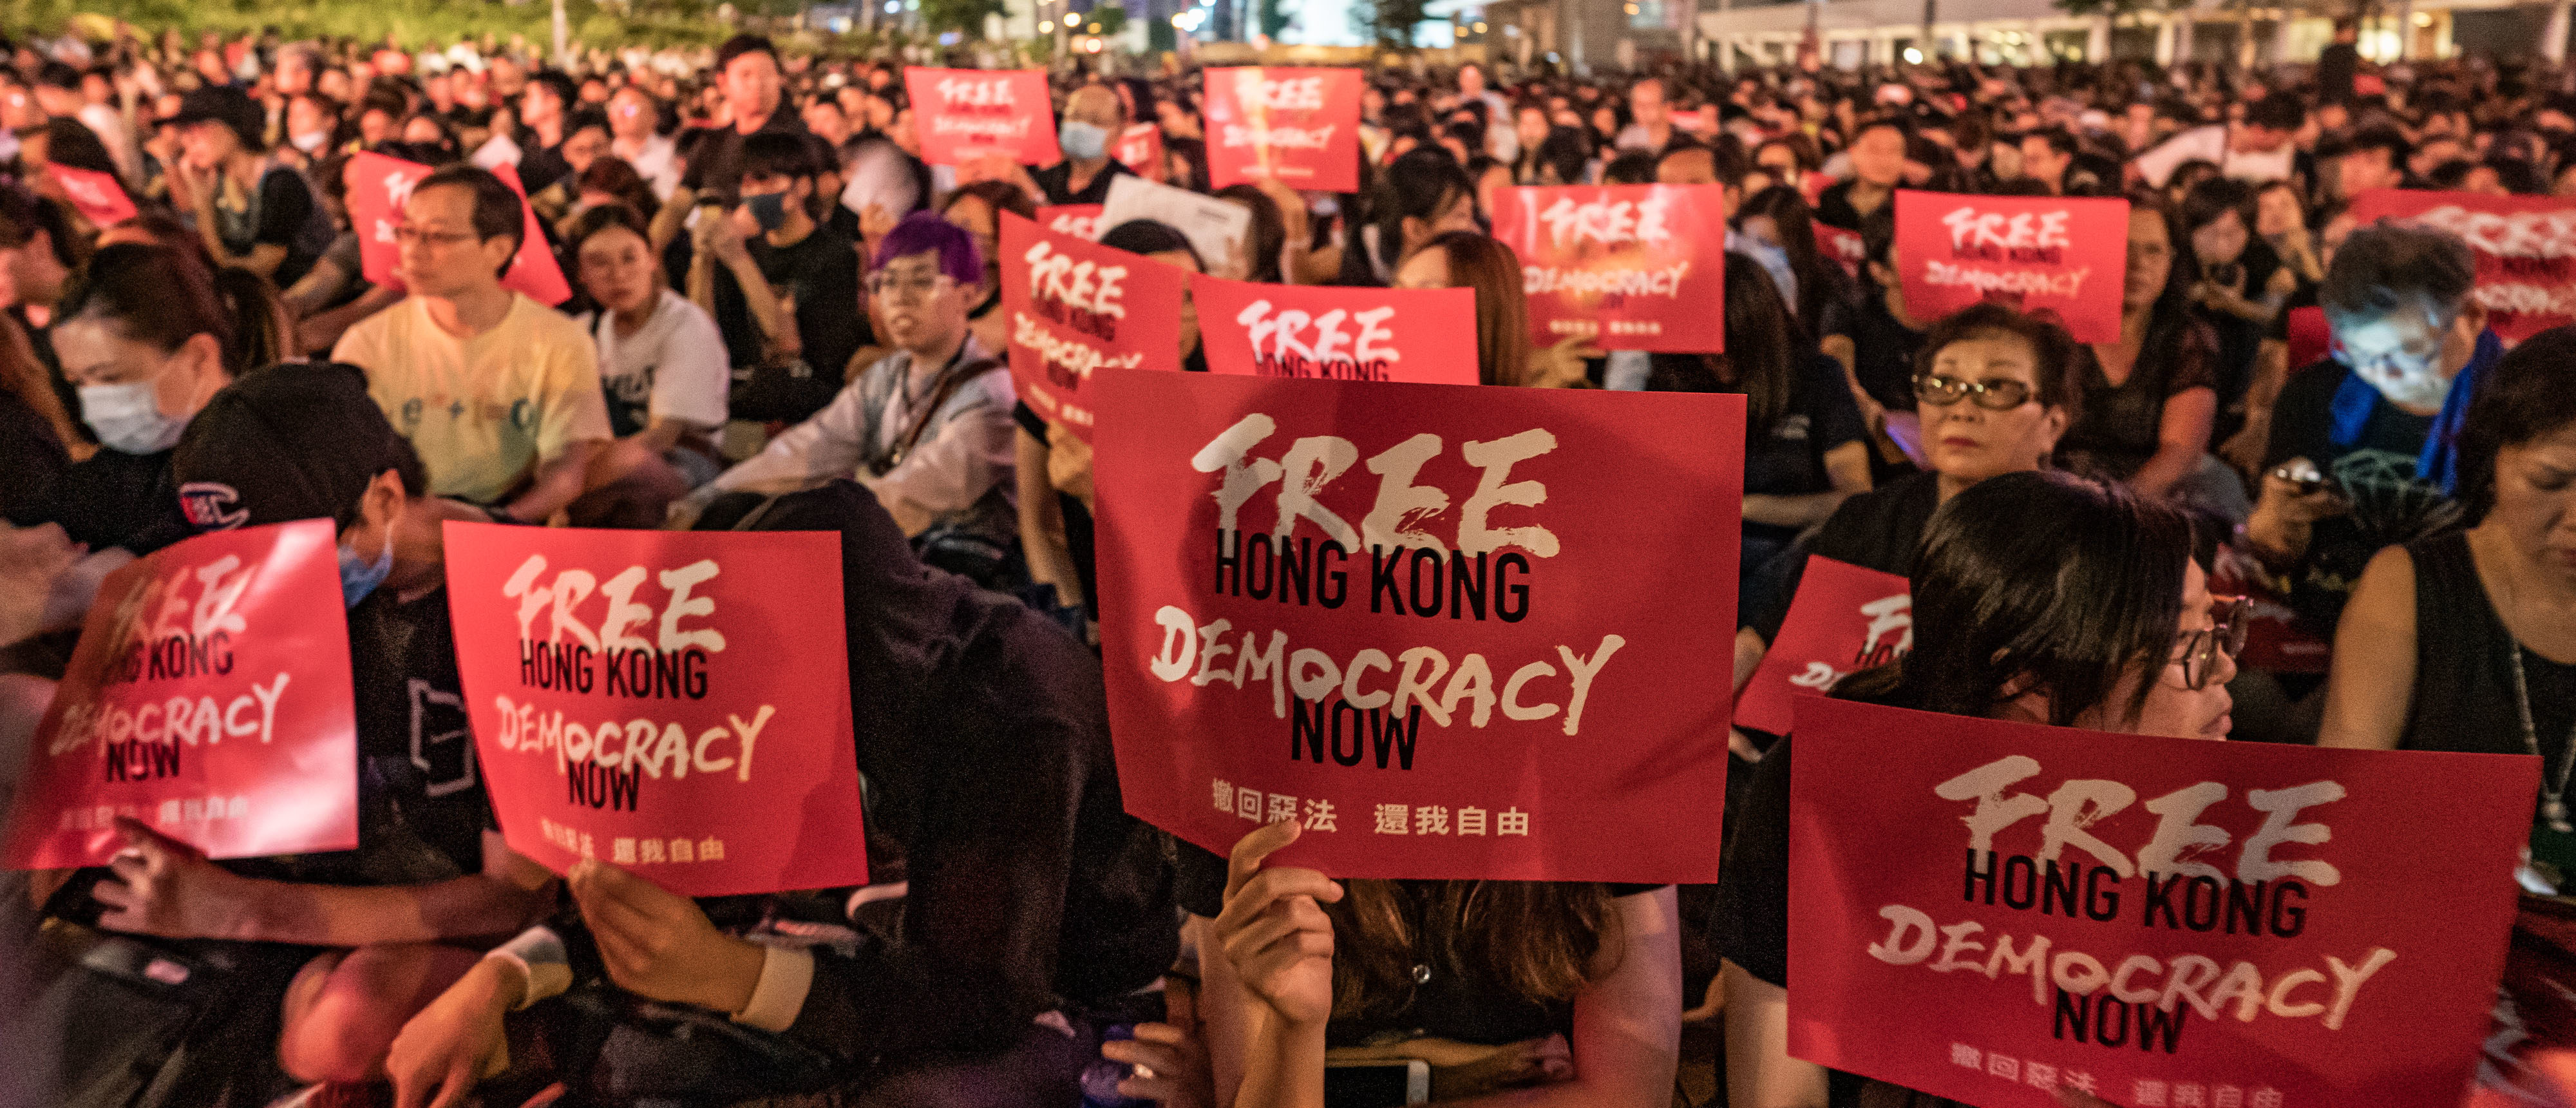 HONG KONG, HONG KONG - JUNE 26: Protesters hold placards as they take part in a rally against the extradition bill ahead of 2019 G20 Osaka summit at Edinburgh Place in Central district on June 26, 2019 in Hong Kong, China. Leaders from the Group of 20 nations are scheduled to gather this week for the G20 summit in Osaka, Japan. (Photo by Anthony Kwan/Getty Images)